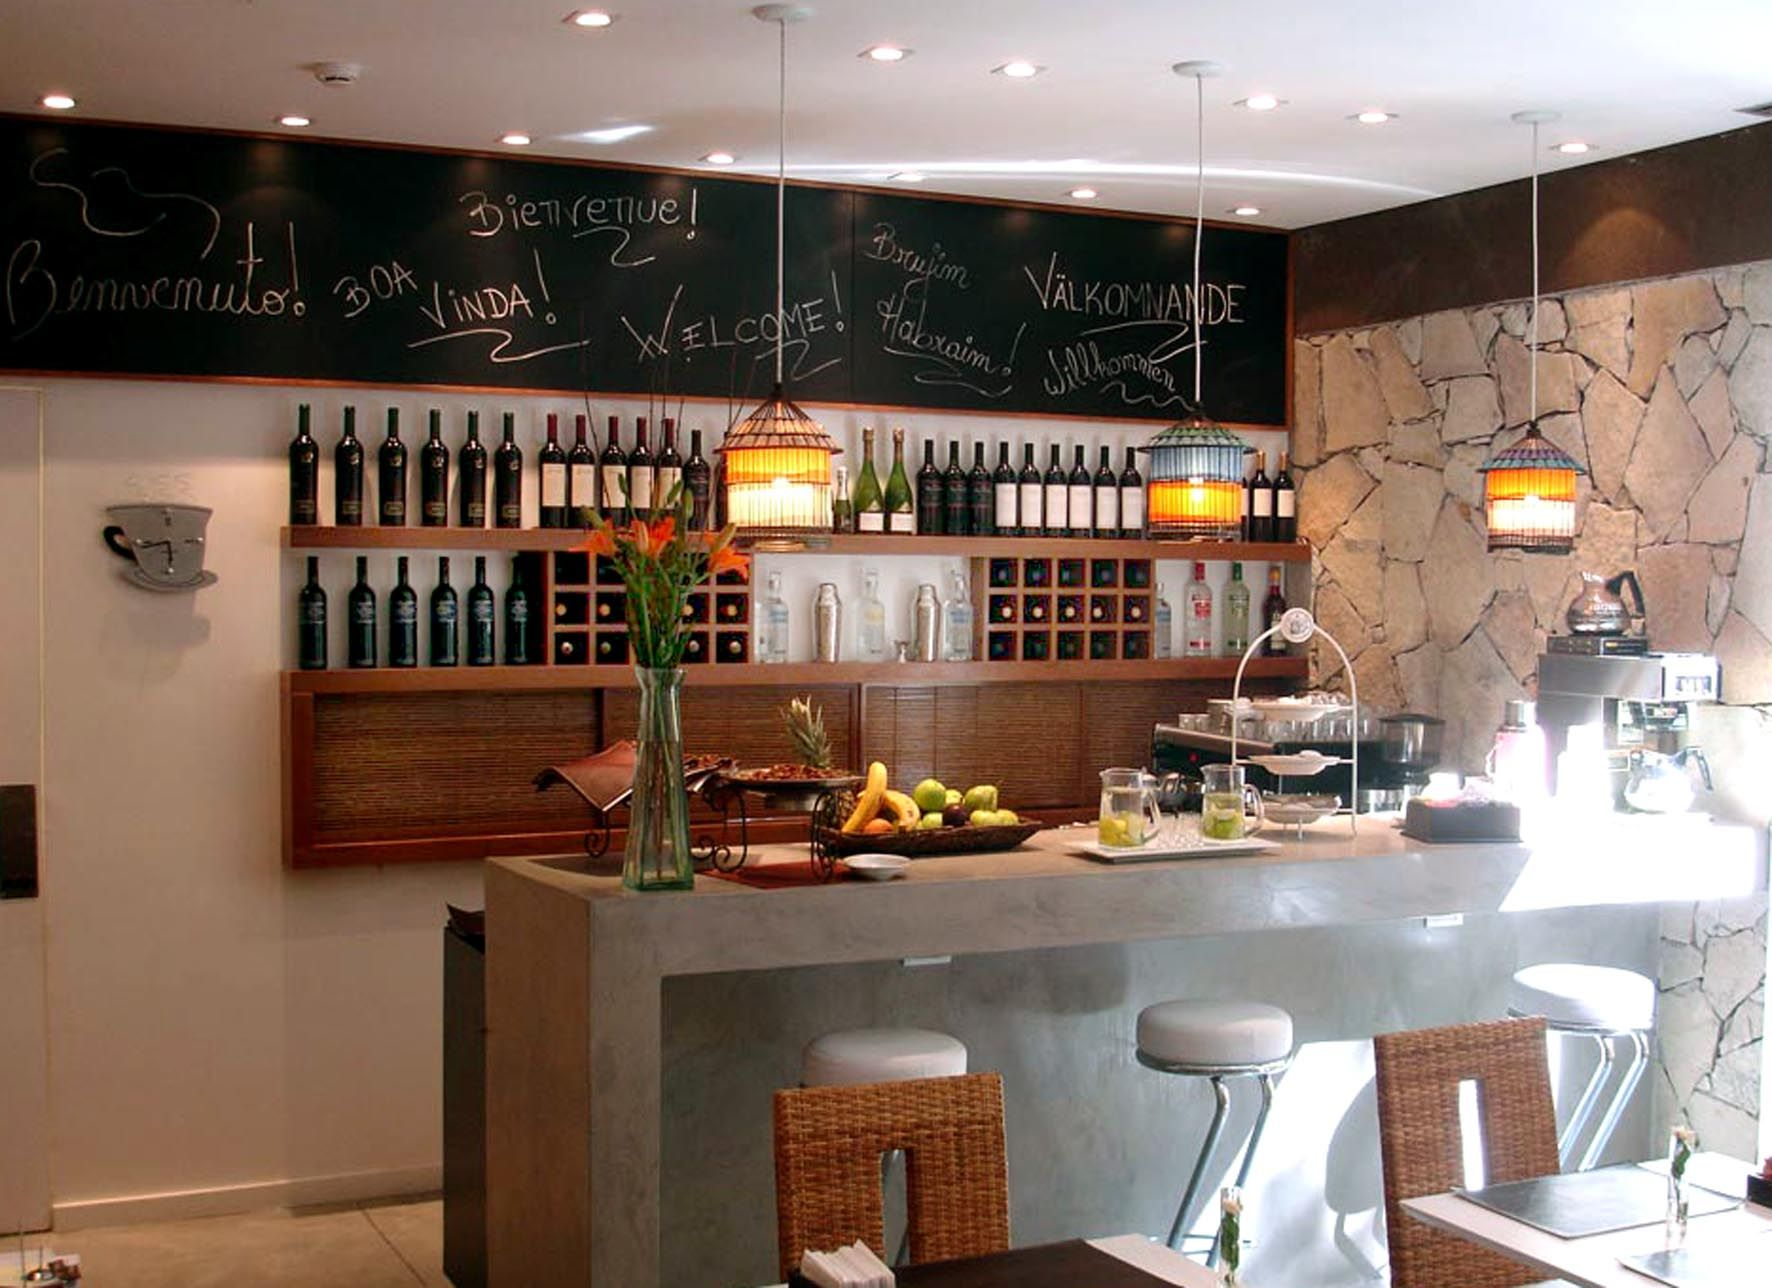 Mueble Bar Casa Bodegas En Casa 3 Deco And Diy Ideas Pinterest Bar En